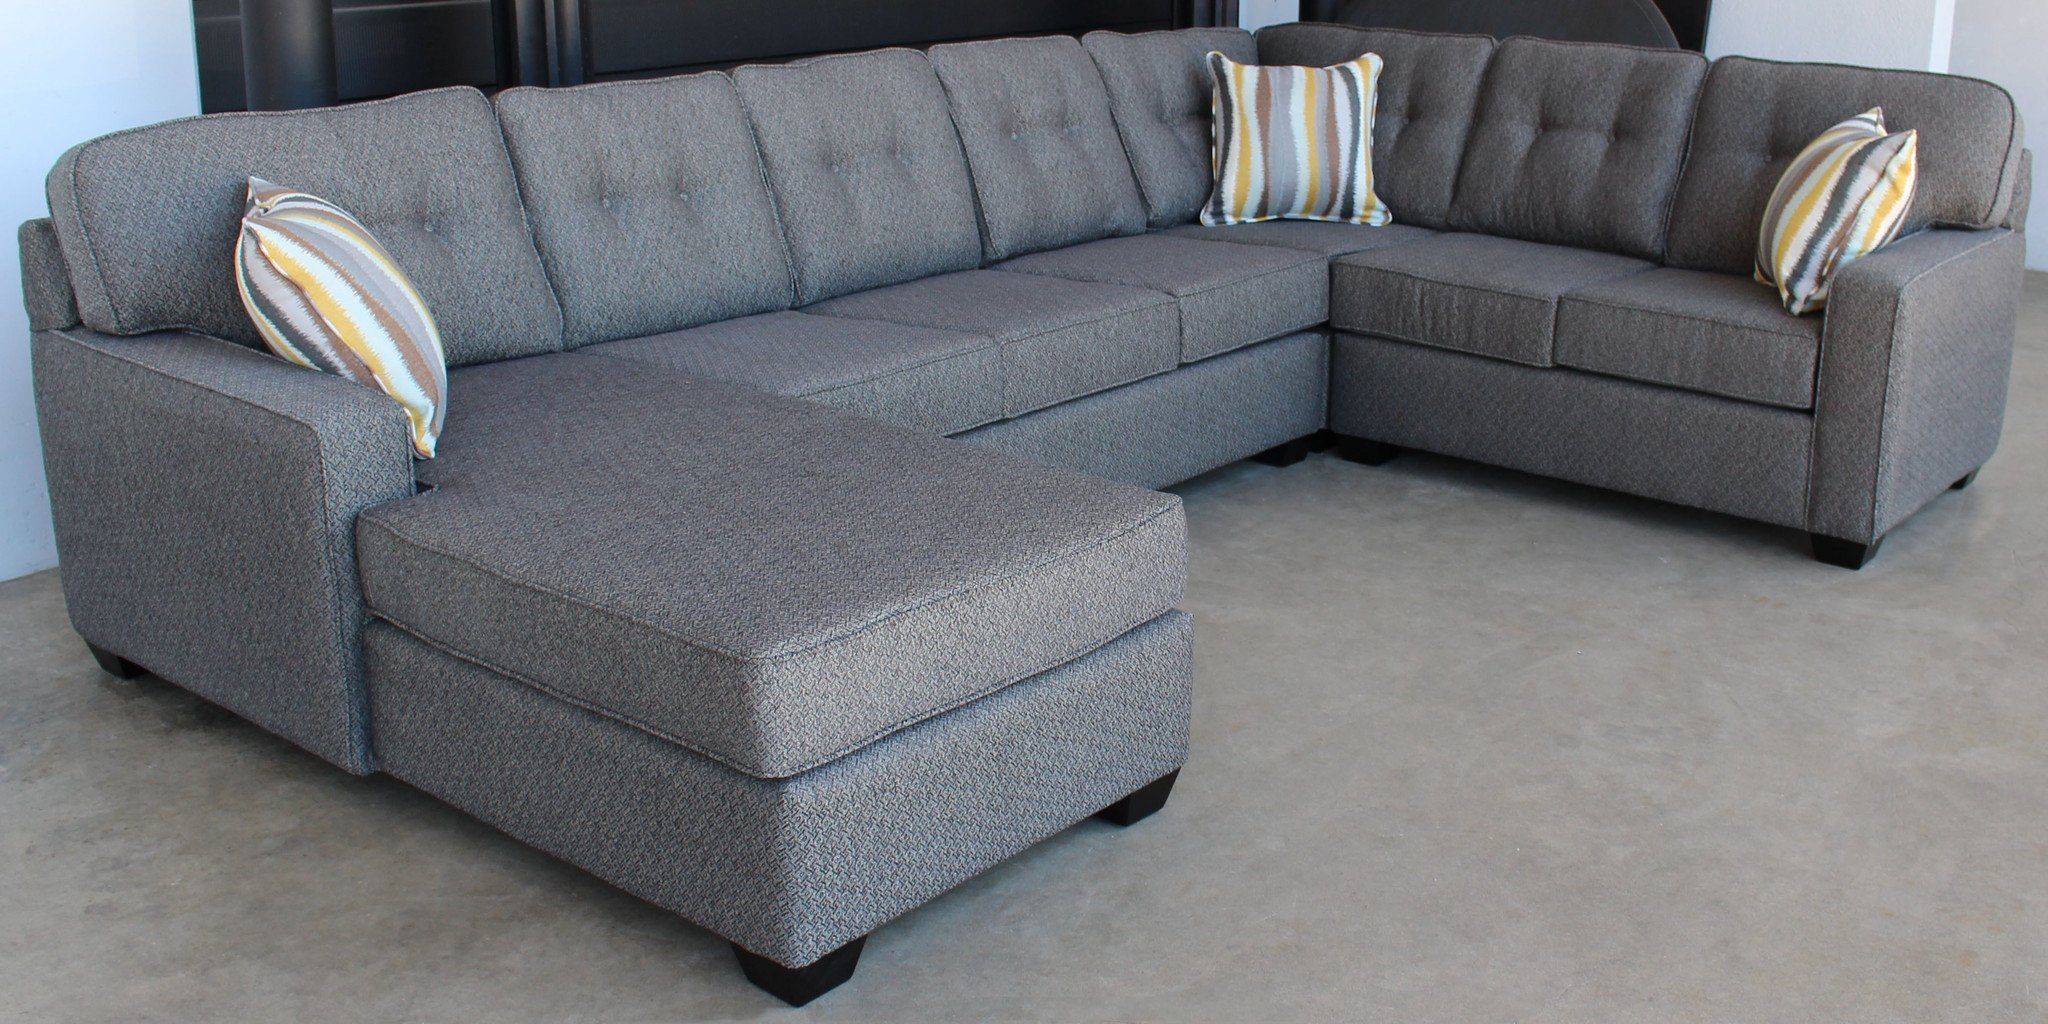 Dallas 4 Piece Sectional - Calgary Furniture Stores